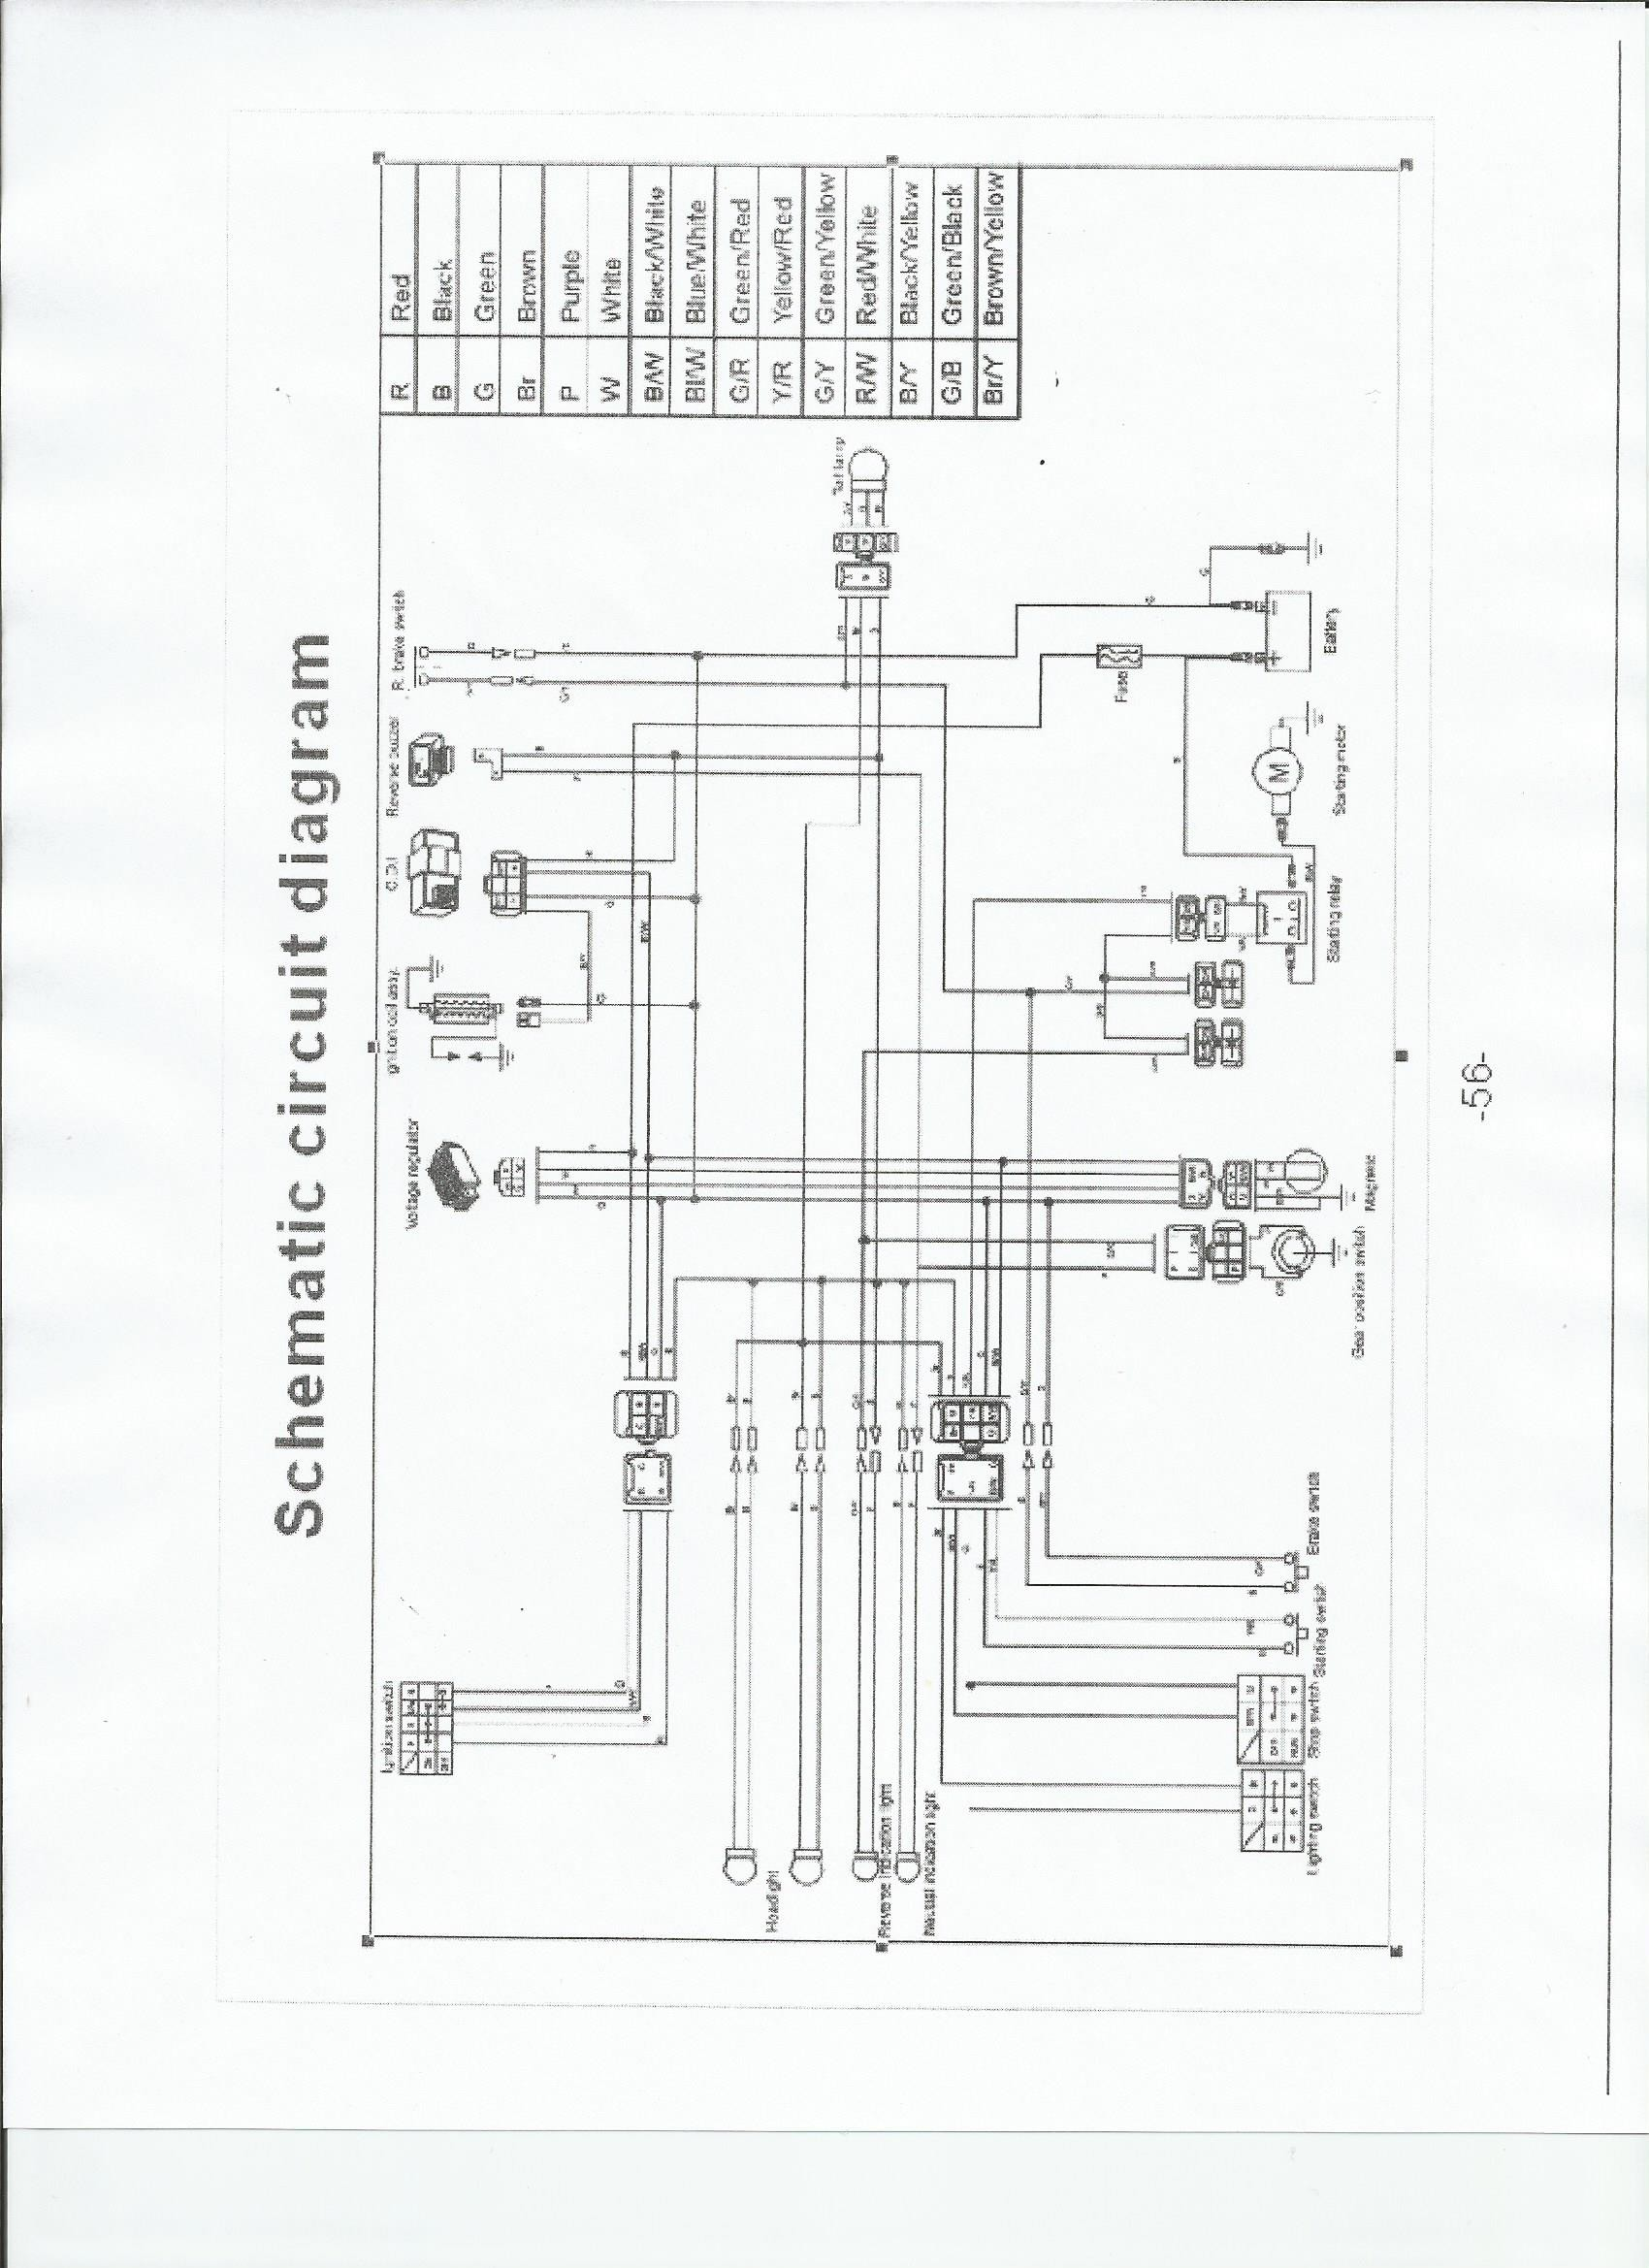 Wiring Diagram As Well Honda 90 Atv On 90 Honda Civic